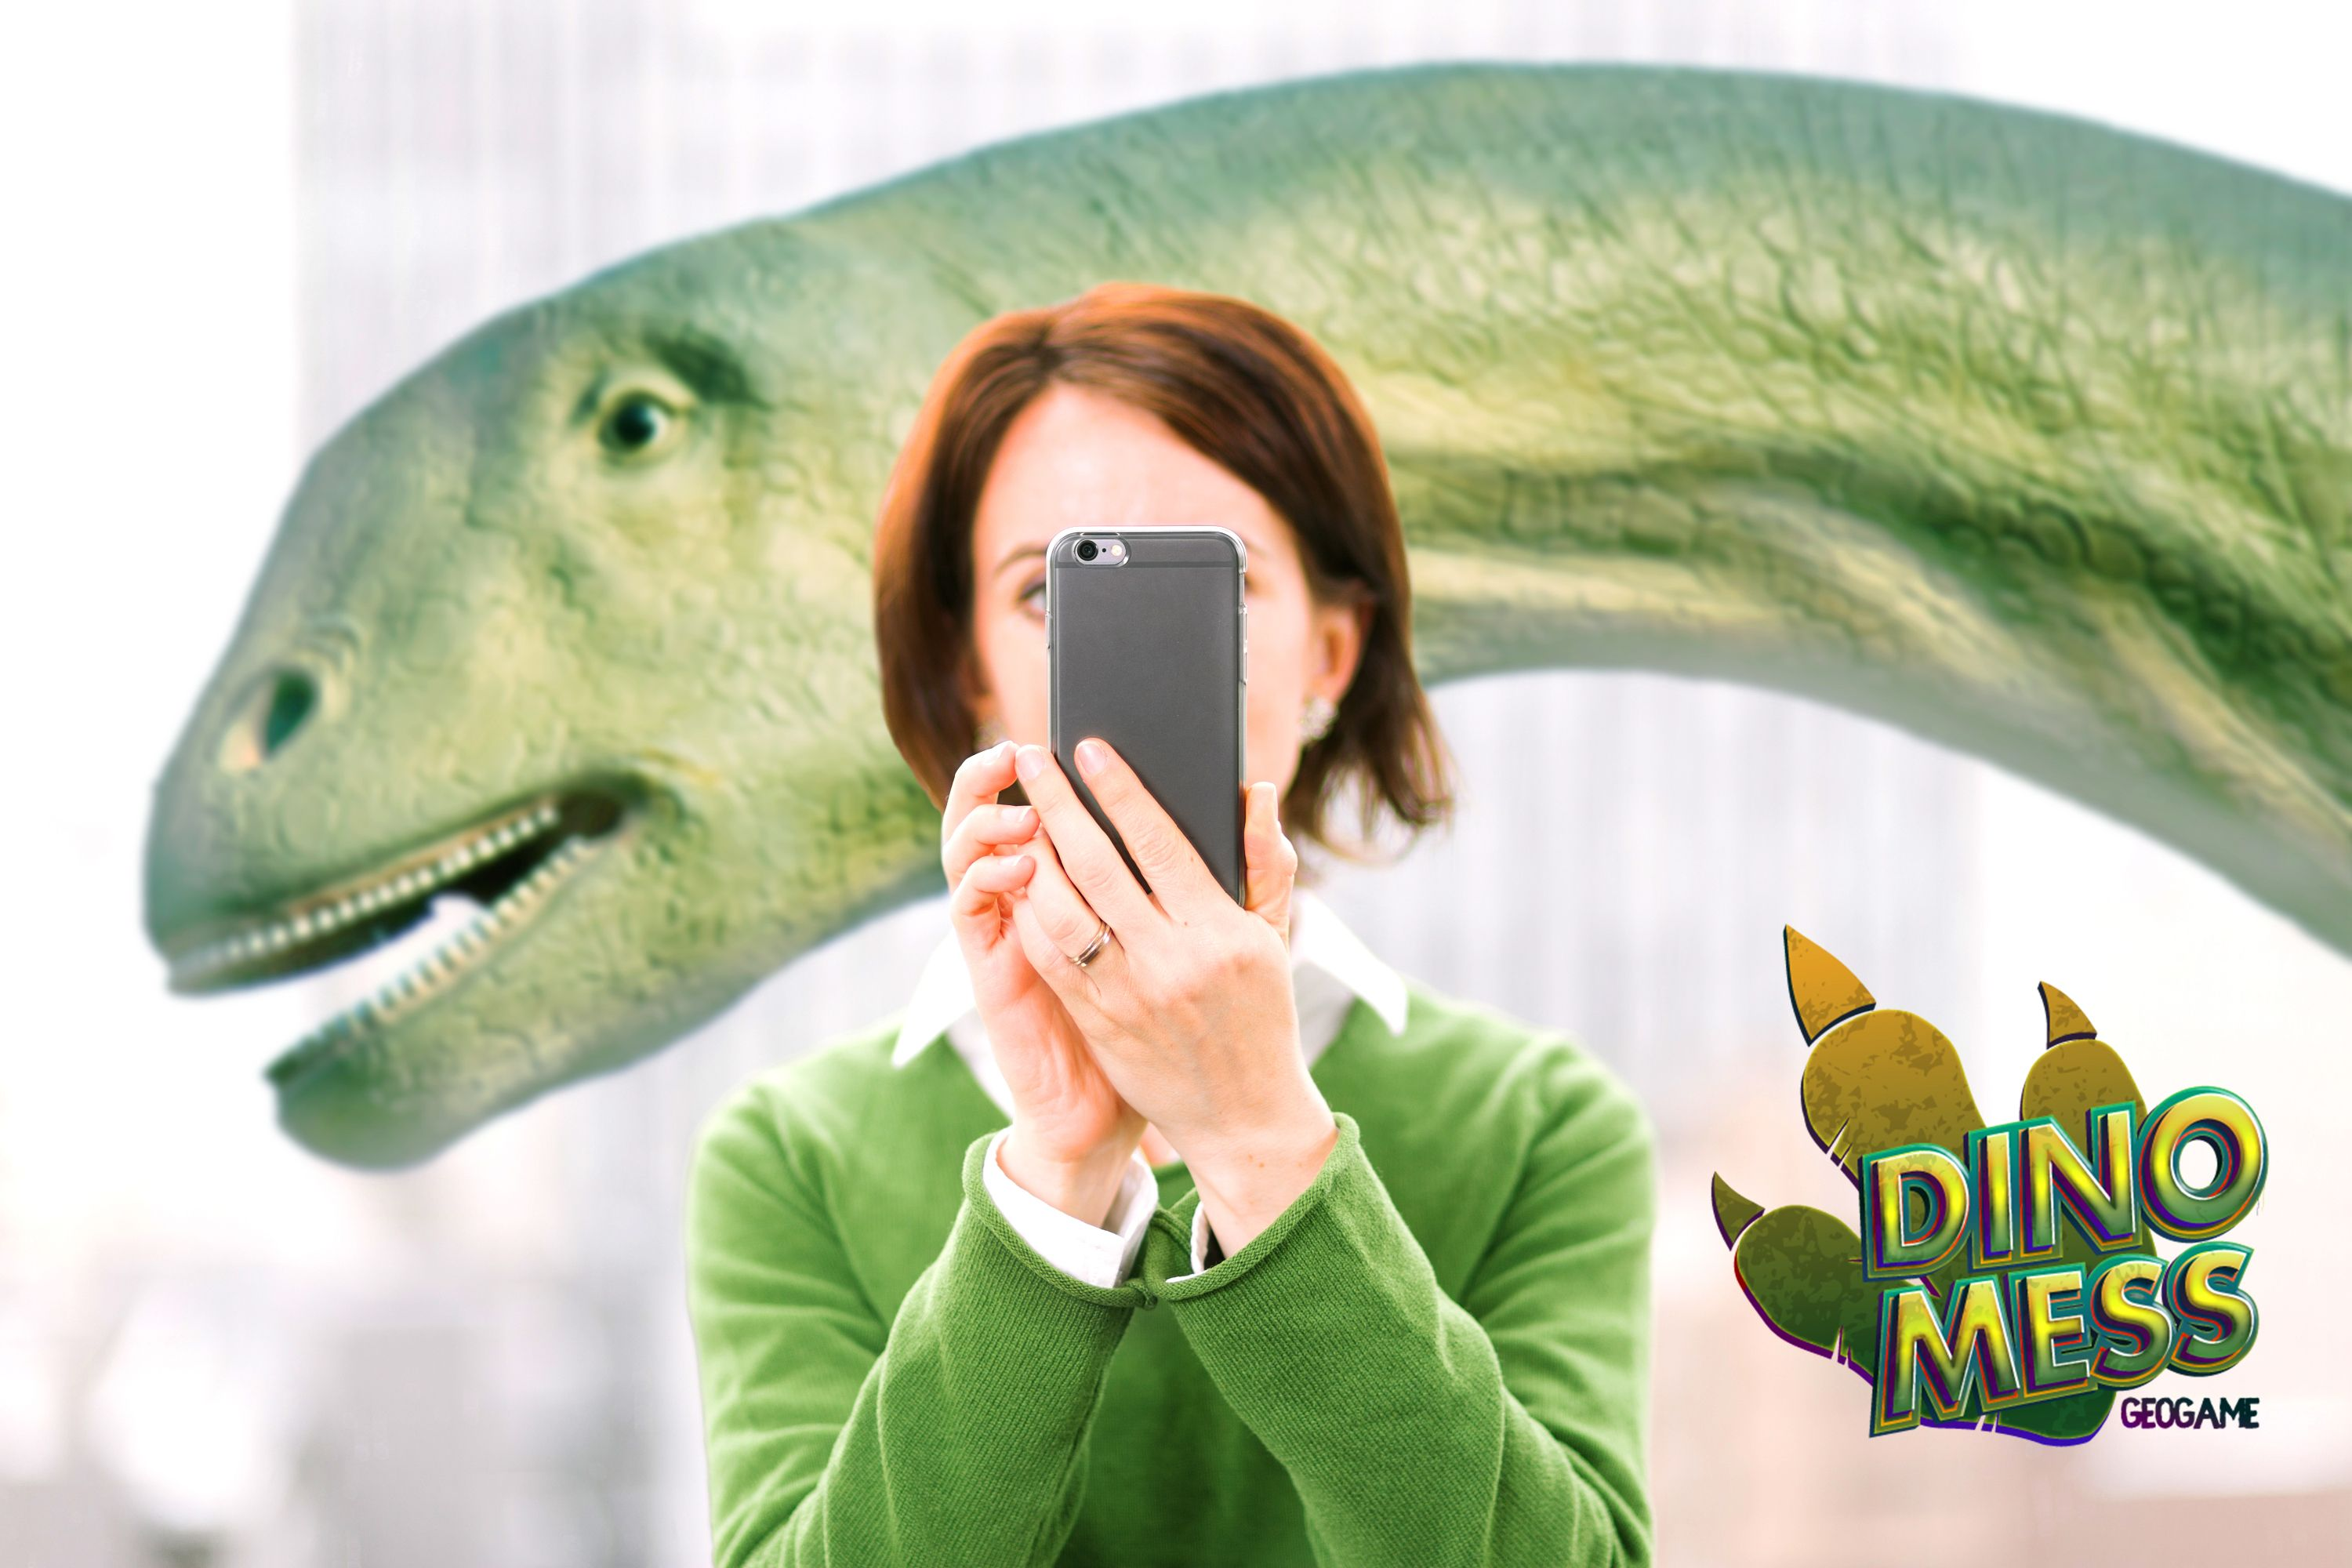 Shhhh! Don't move! He is here... #DinoMess #DinoMessGeoGame #geogame  #dinosaur #dinosaurs #jurassic #fun  #nature #amazing #cool#follow  #like